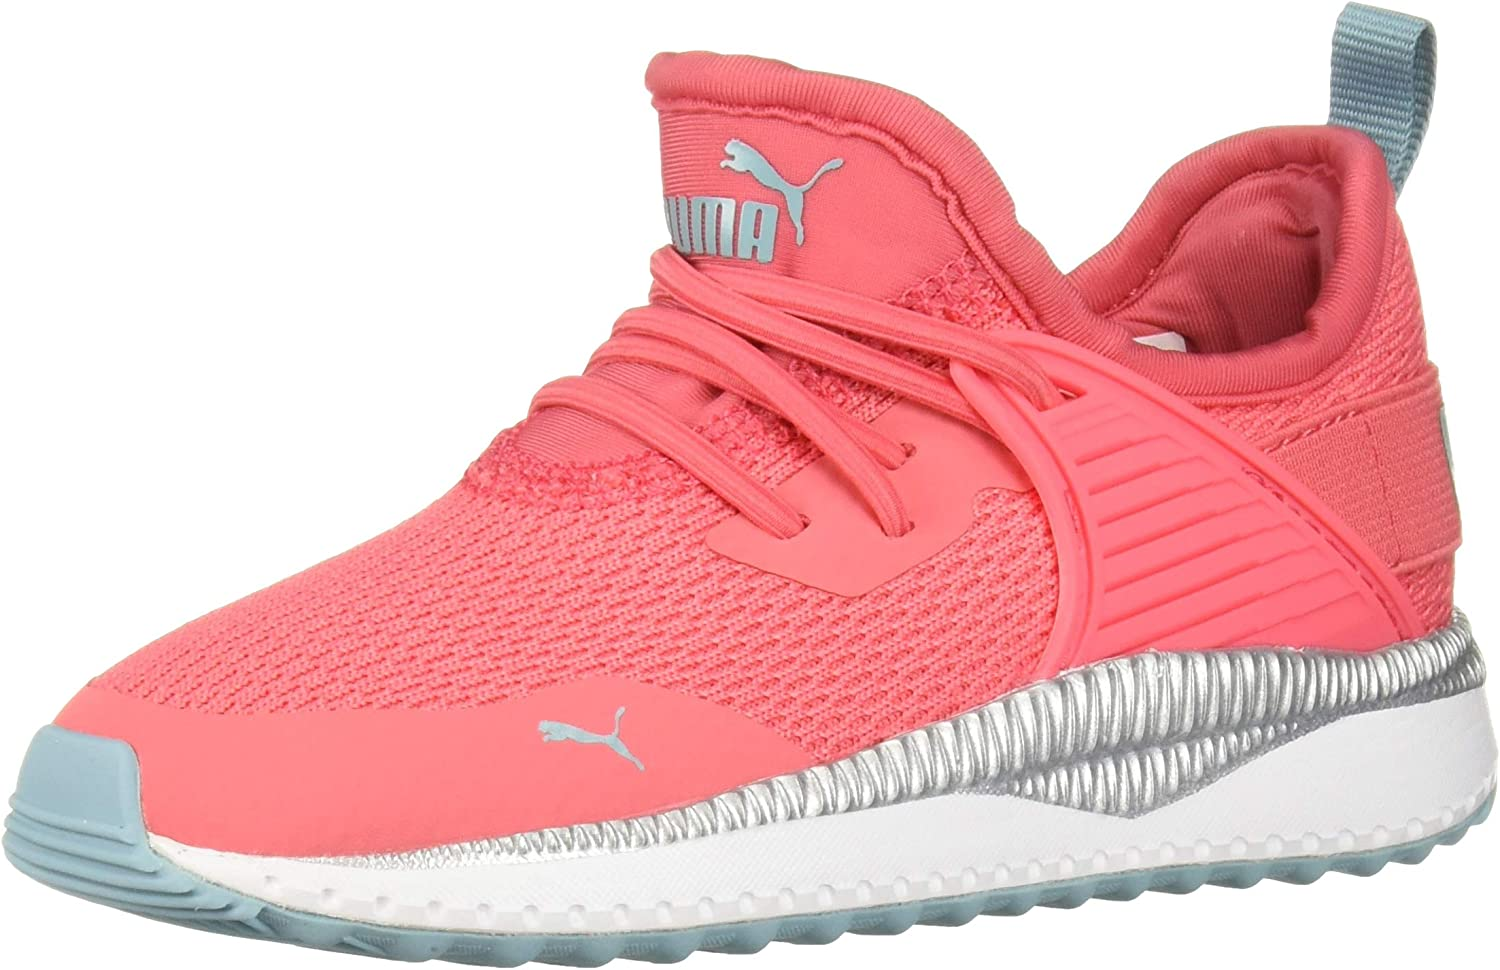 PUMA Unisex-Kids' Pacer Fresno Mall Sneaker Cage Next Mail order cheap